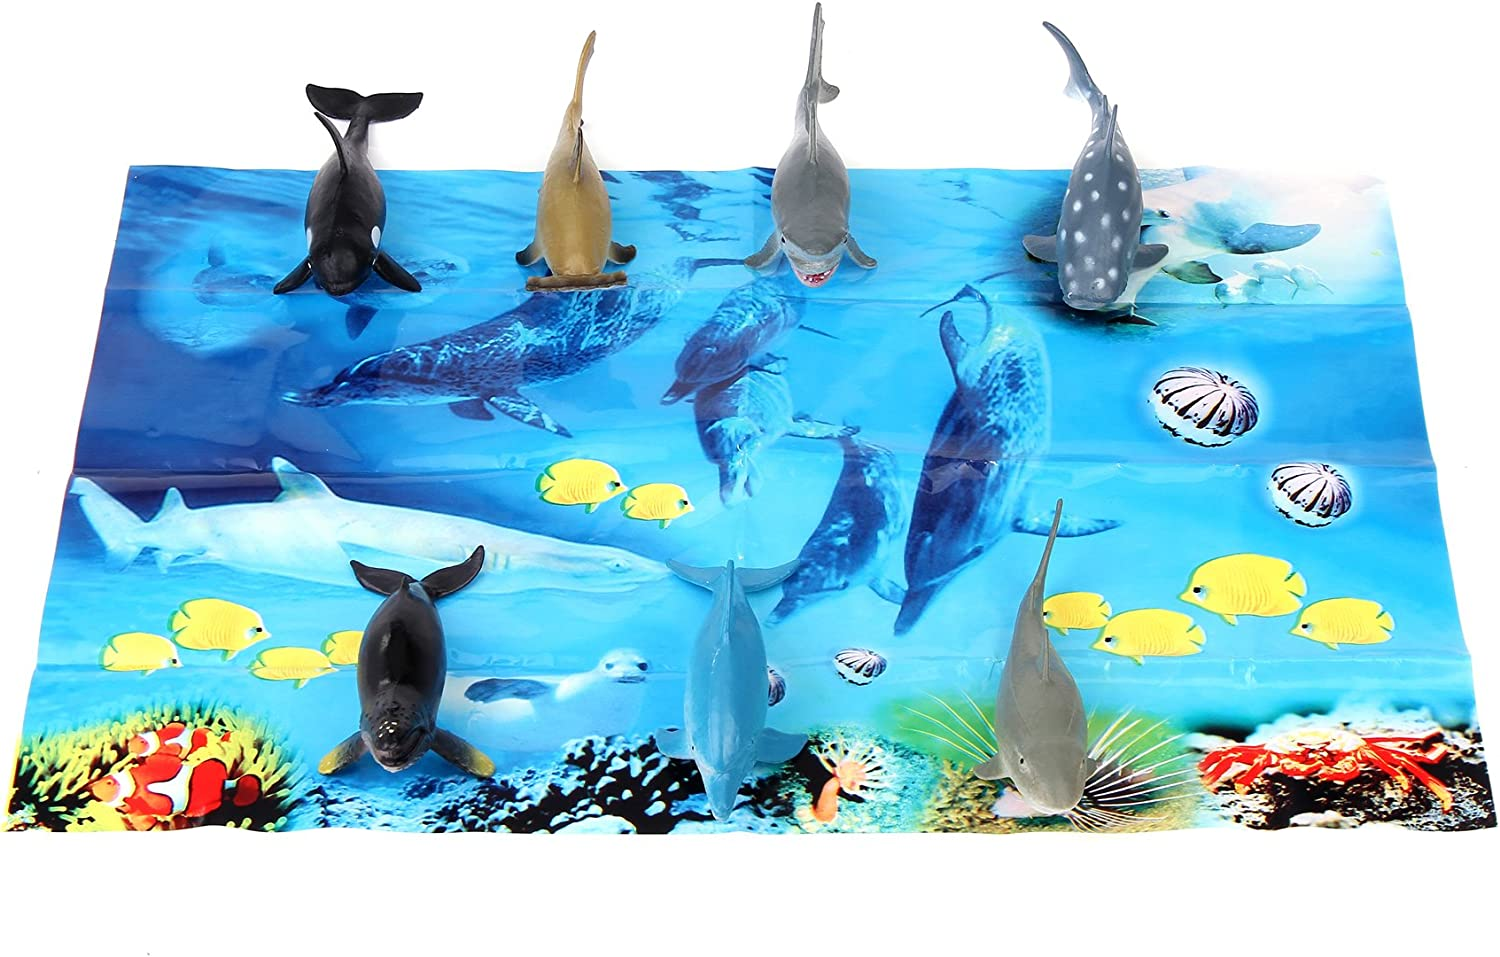 Fun Central 7 Pieces Shark Tub for Kids /& Toddlers with Playmat Assorted Styles Shark Figurines Bath Toys